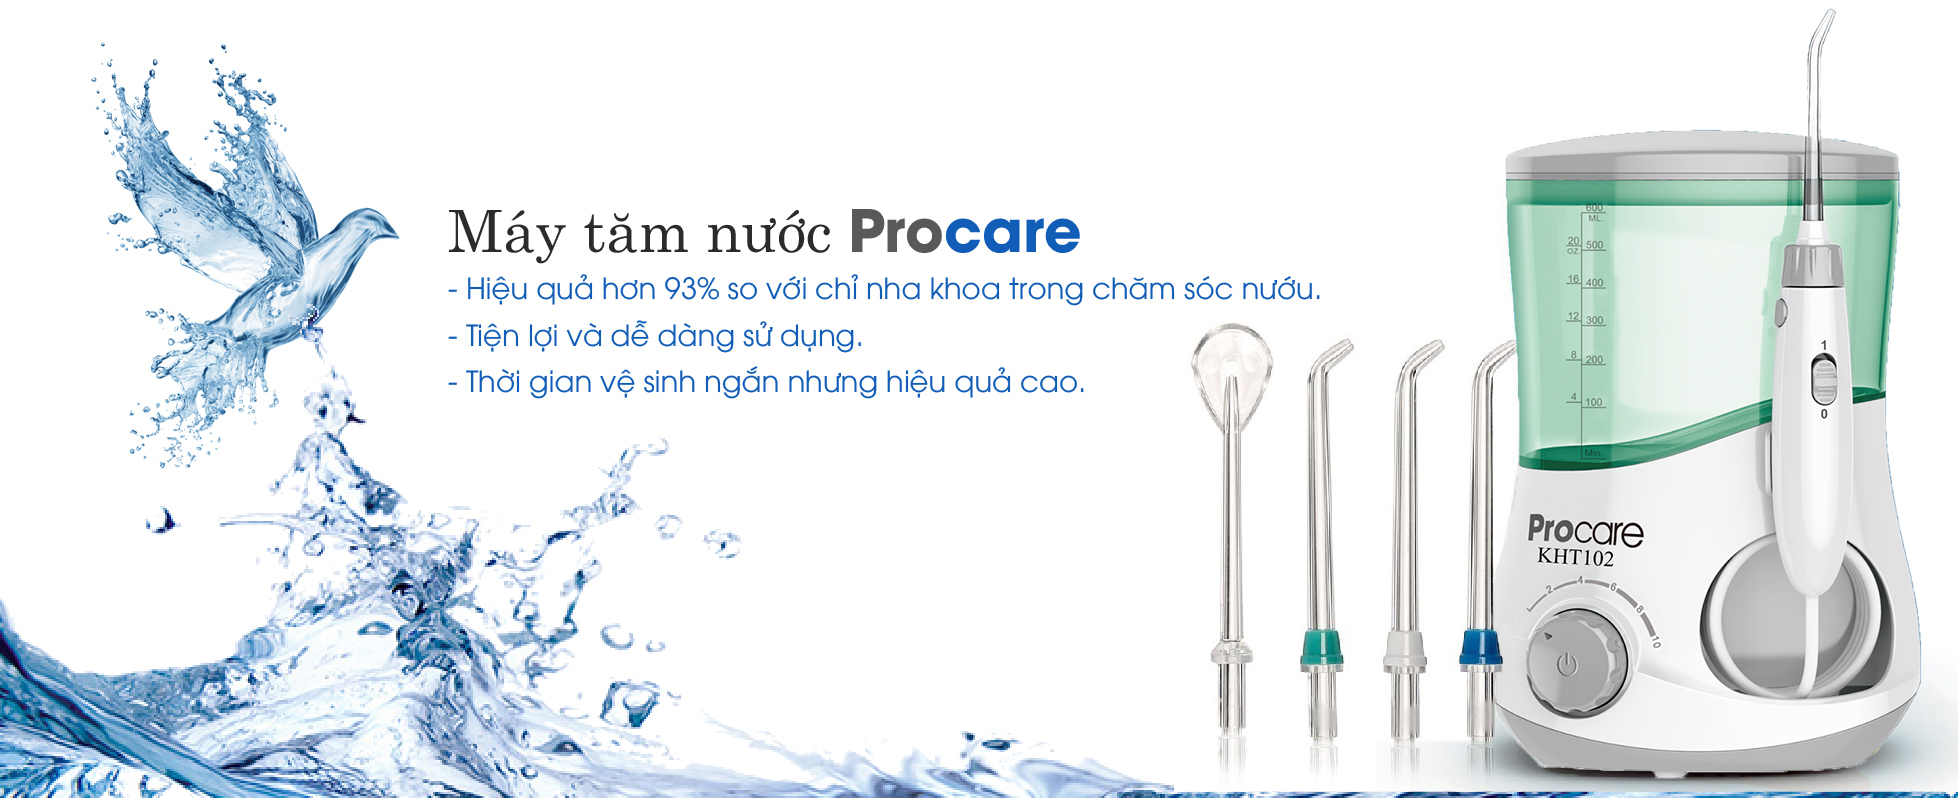 http://procare.asia/may-tam-nuoc-de-ban-kht102